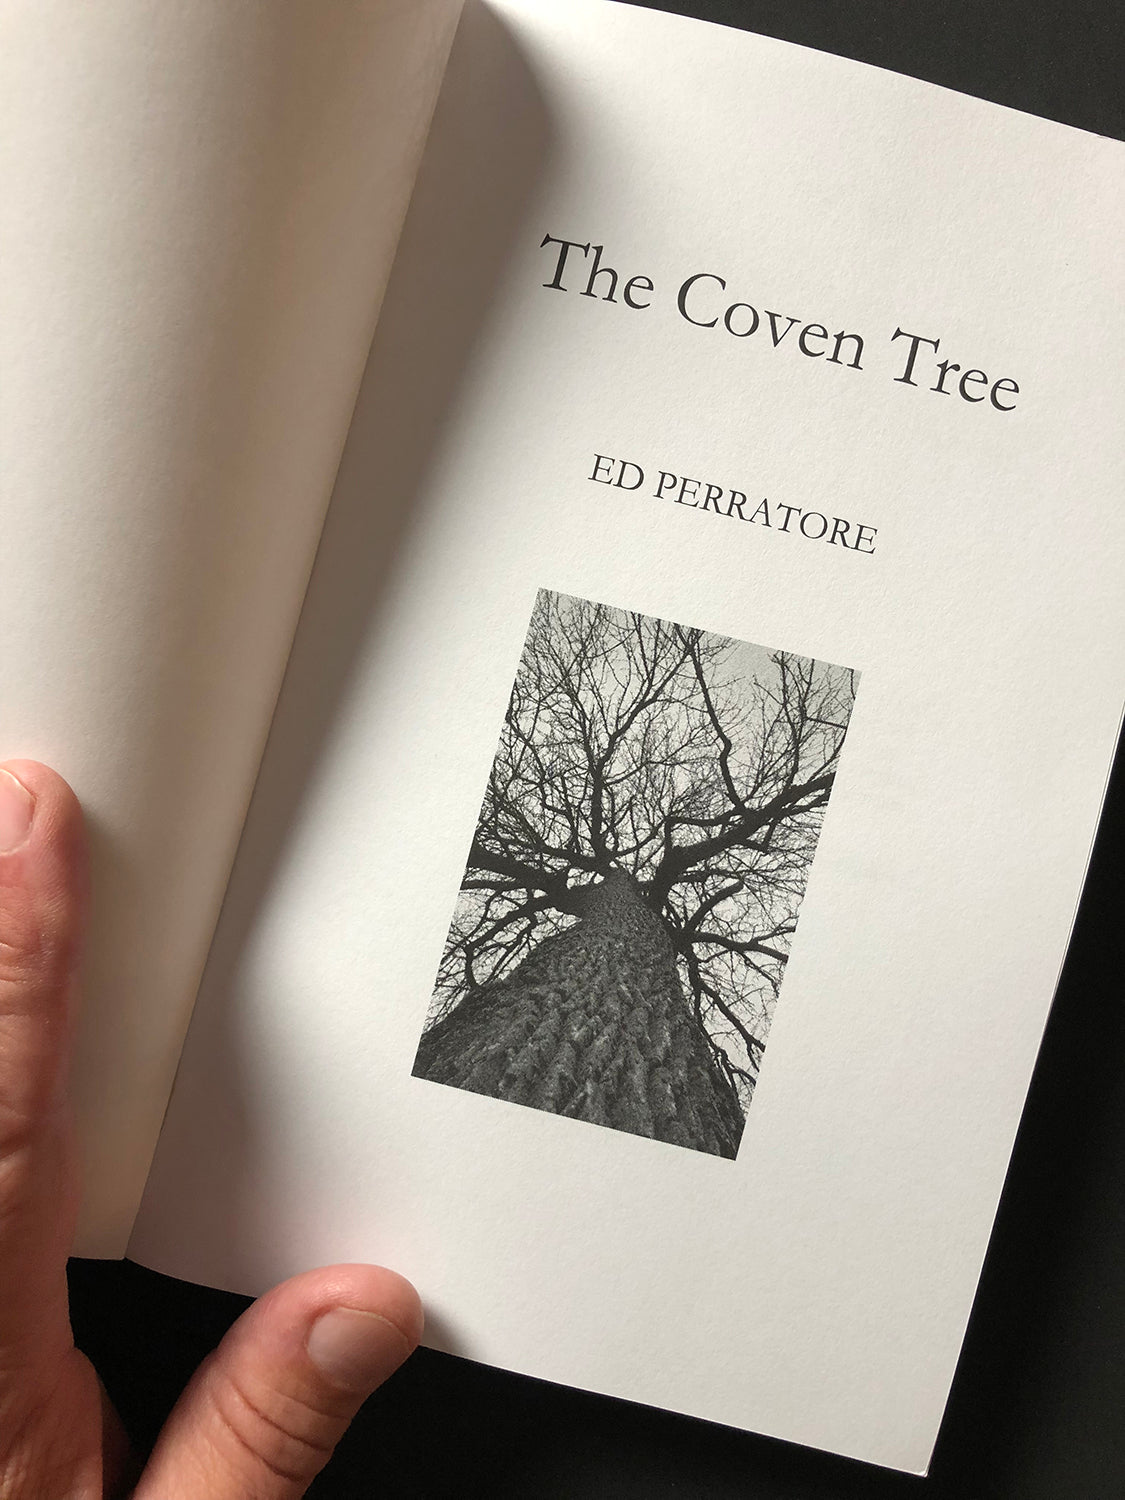 Keith Dotson's photograph of a giant cottonwood tree in winter as seen on the cover page of The Coven Tree written by Ed Perratore.